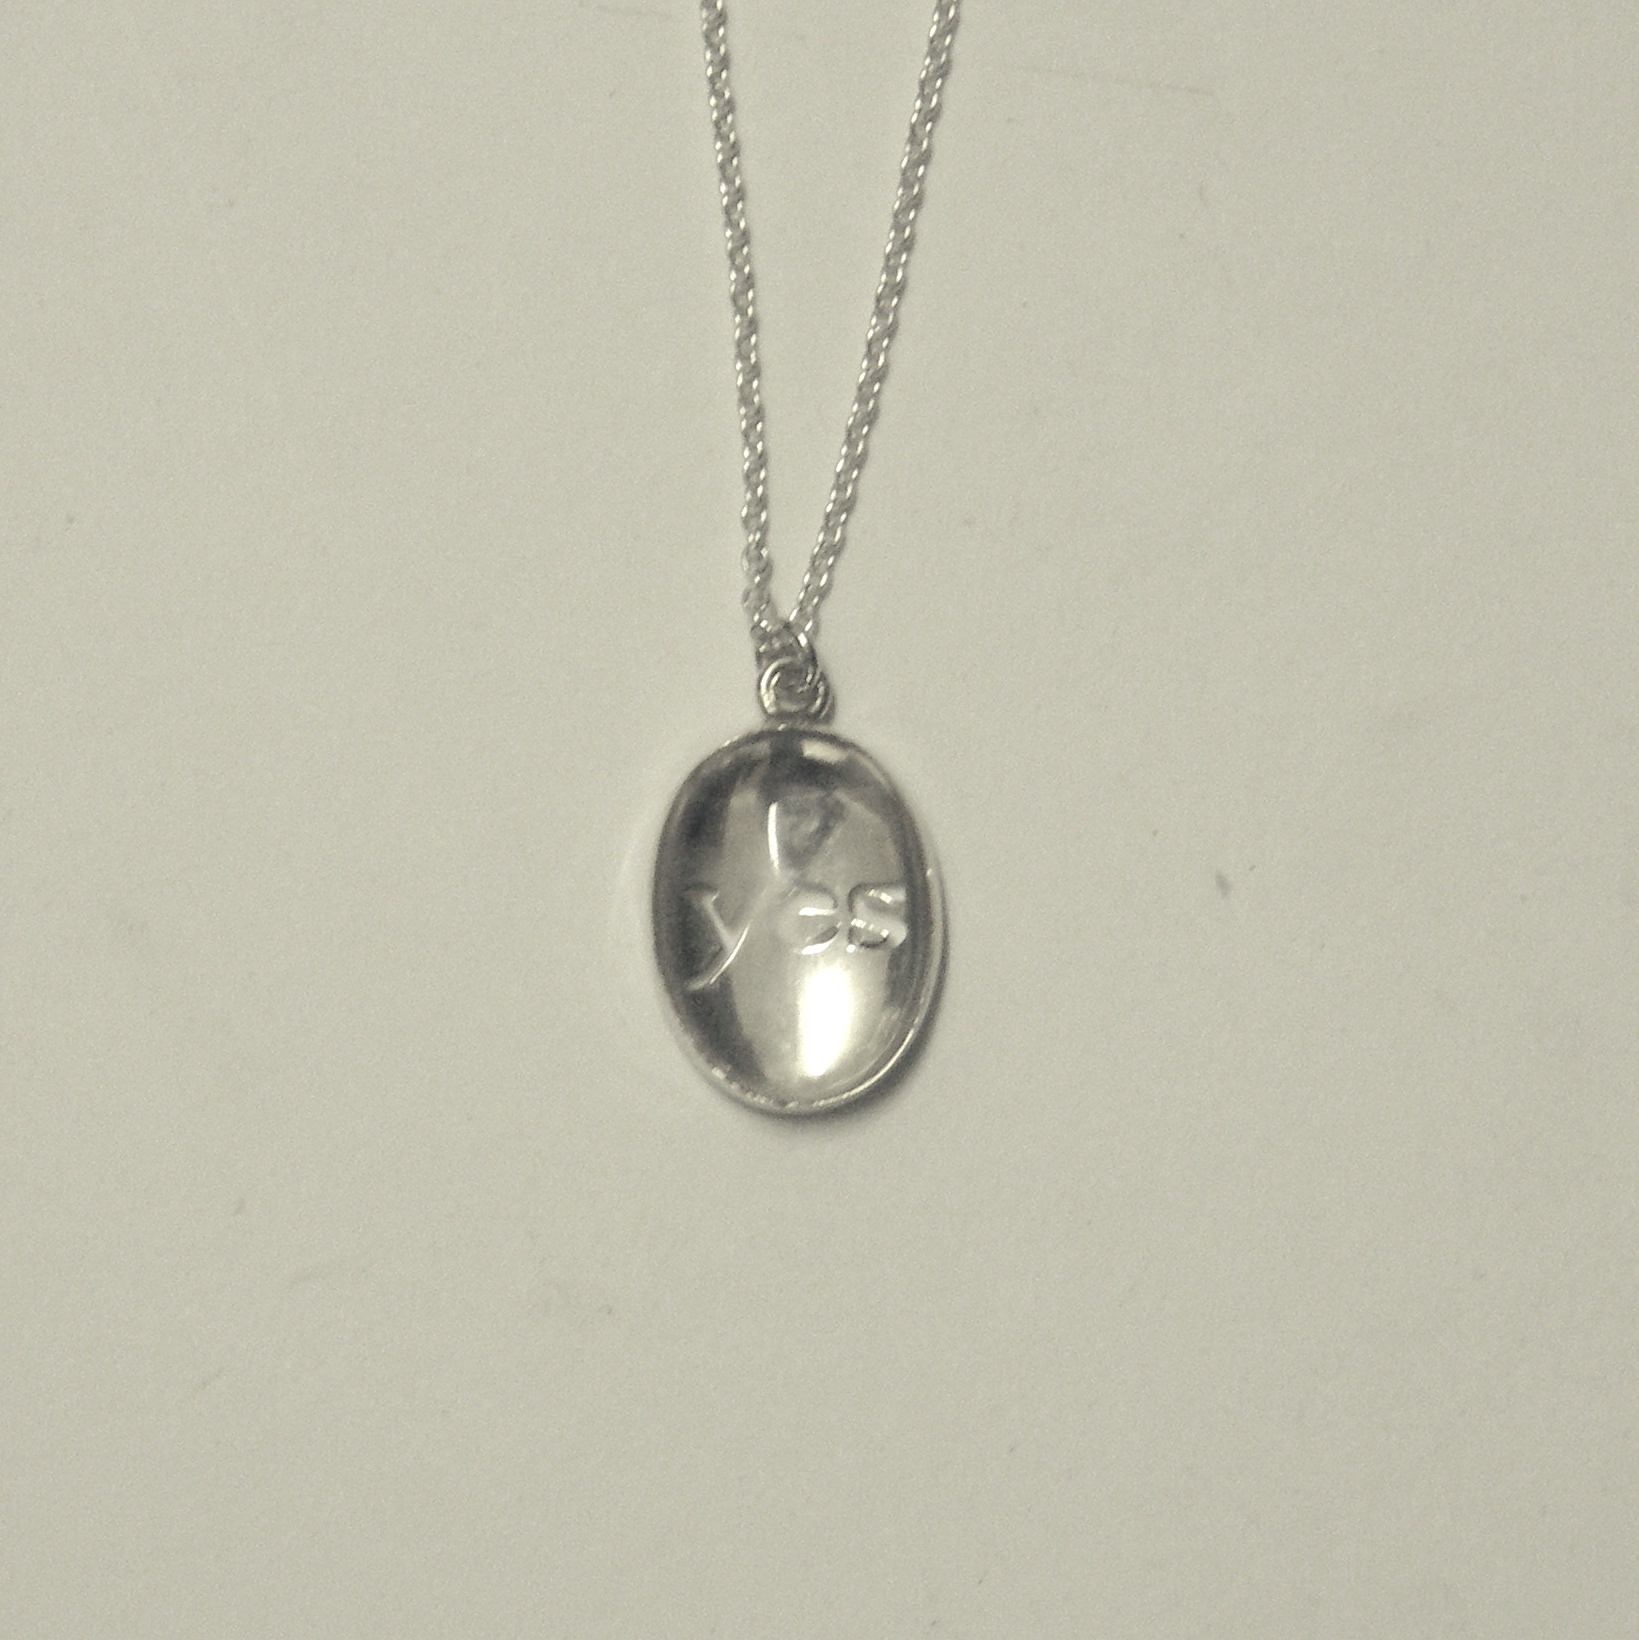 YSN-Yes setting necklace